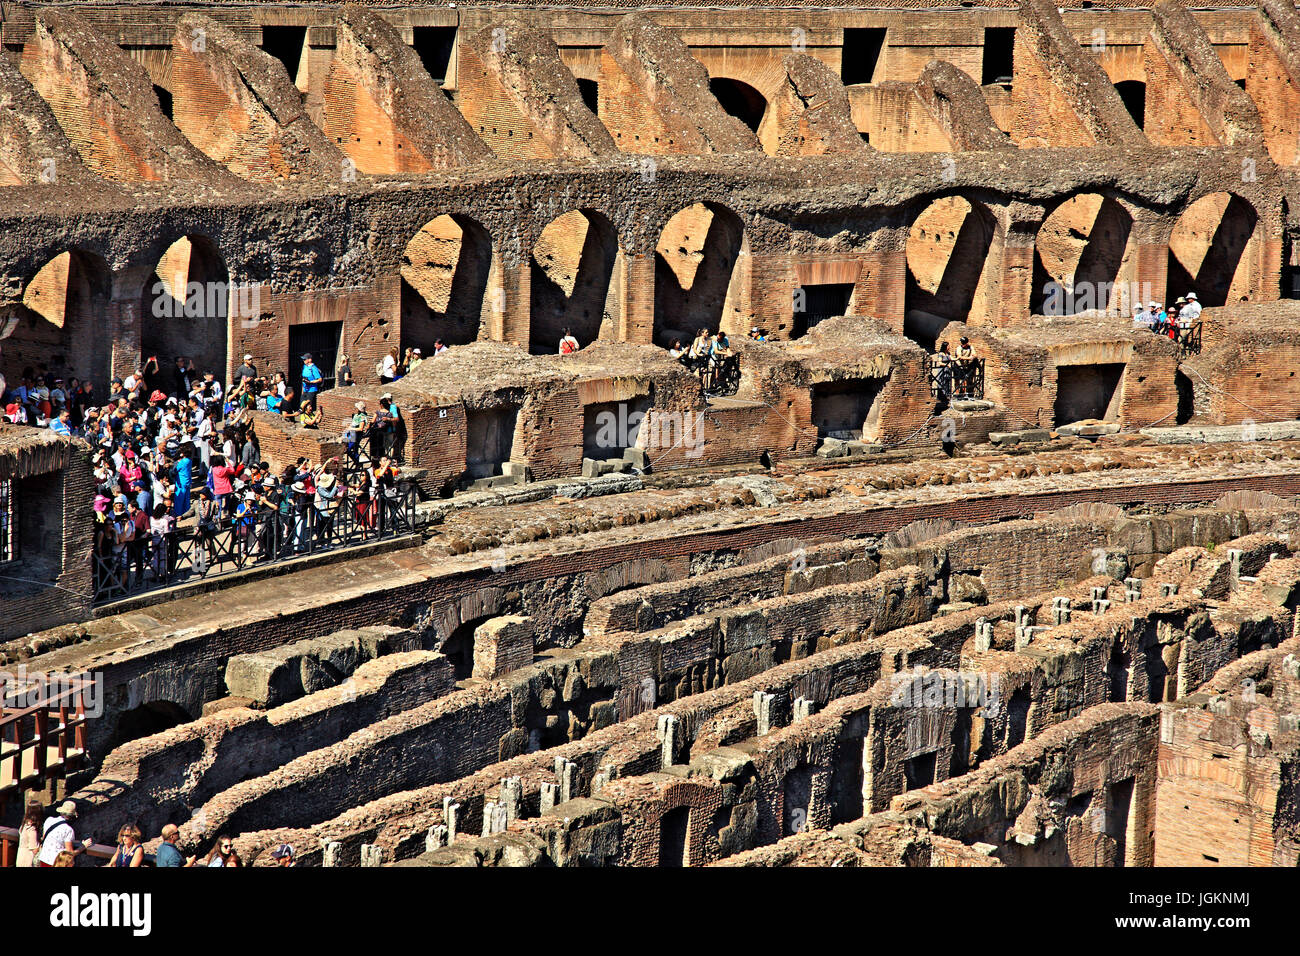 Inside the Colosseum ('Colosseo', also known as the 'Flavian Amphitheatre'), Rome, Italy - Stock Image